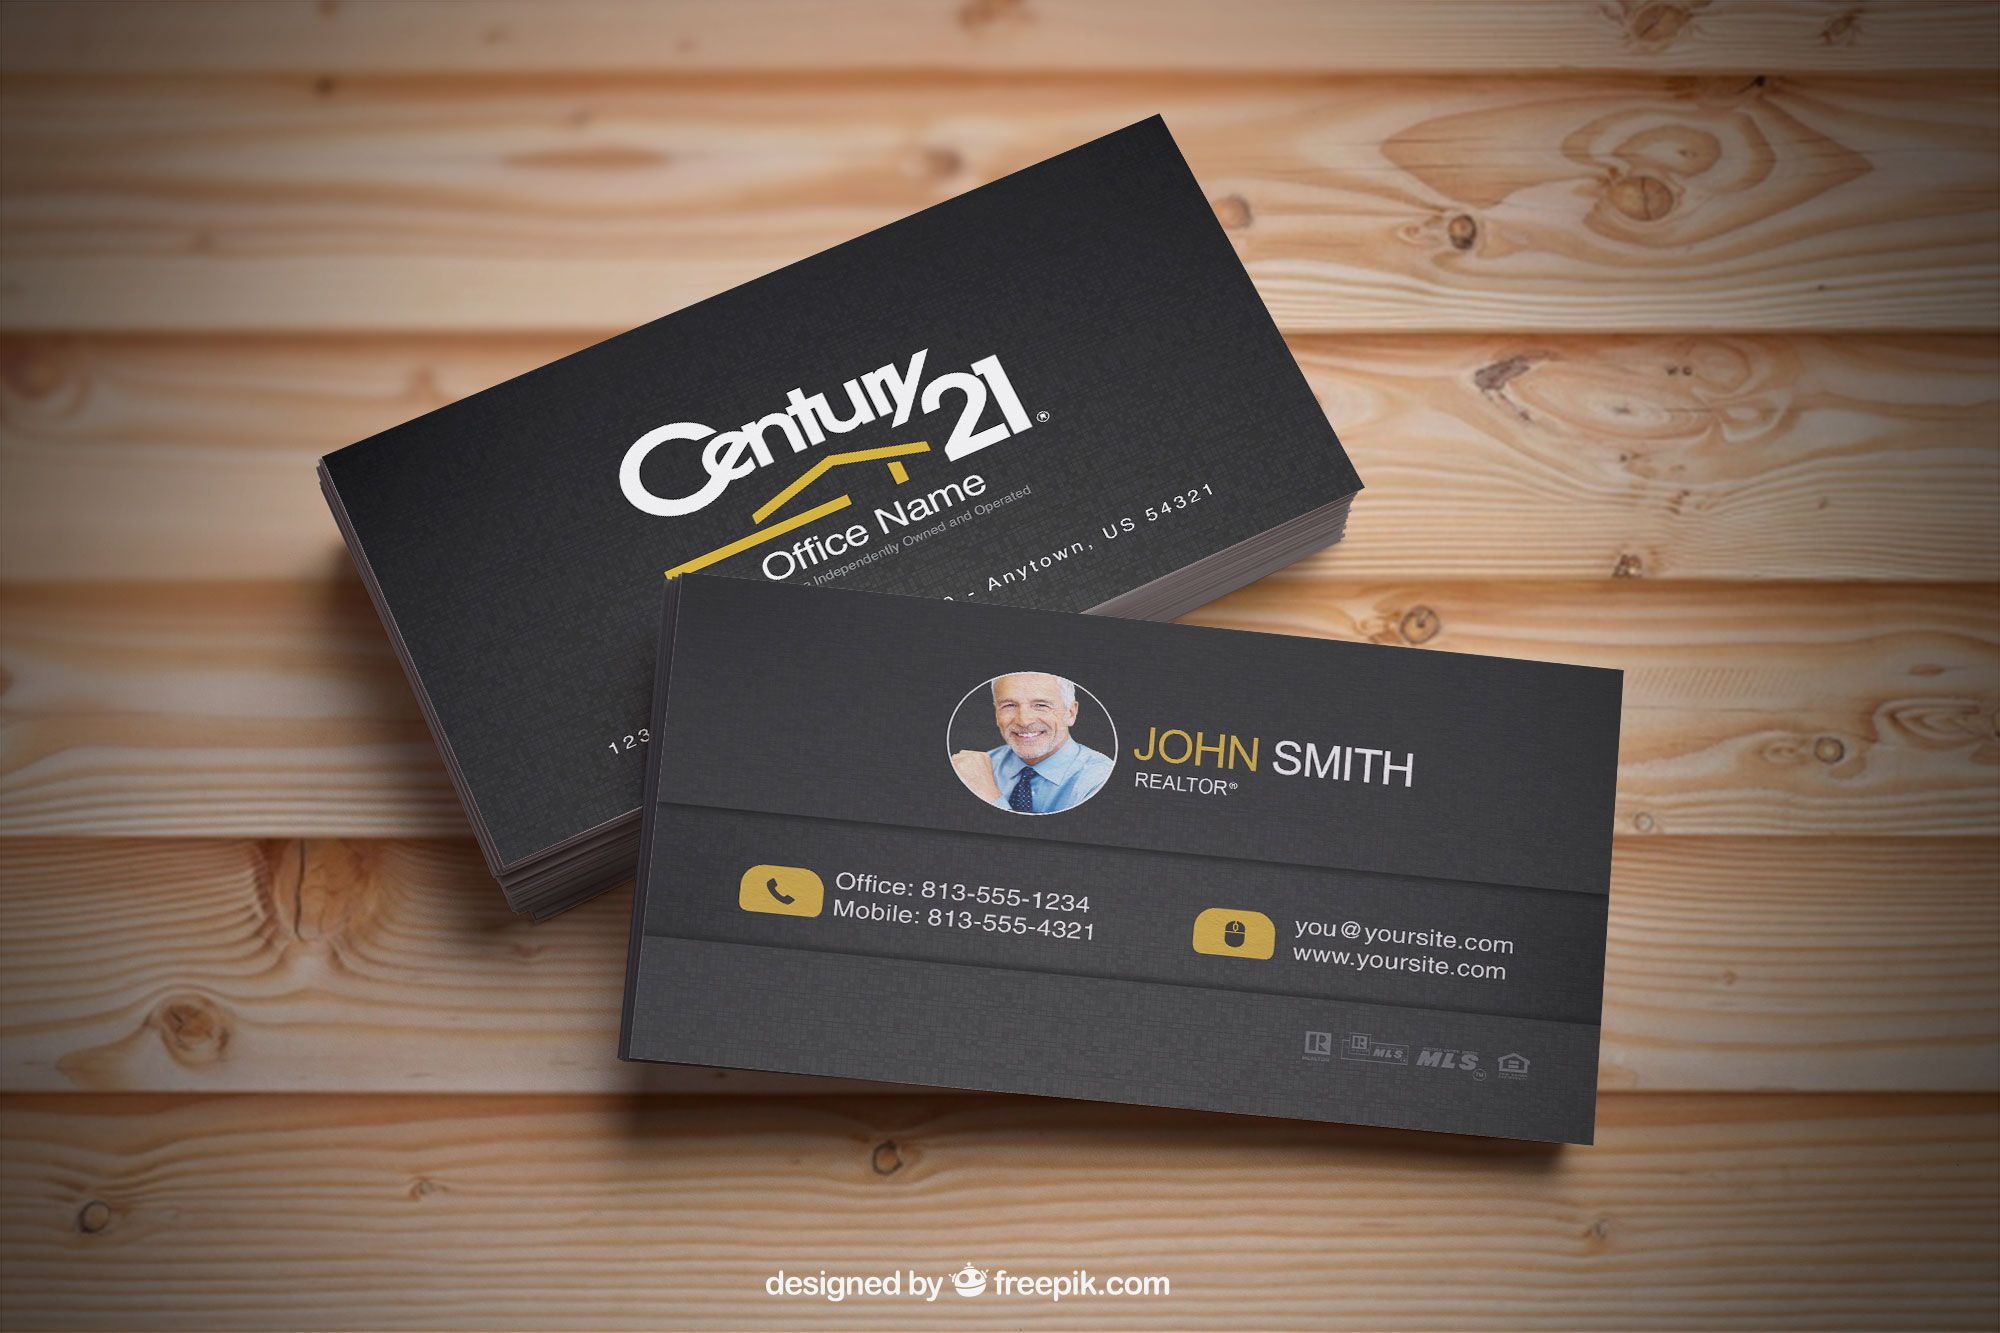 Dark and clean business card designs for Century 21 Realtors. | Real ...